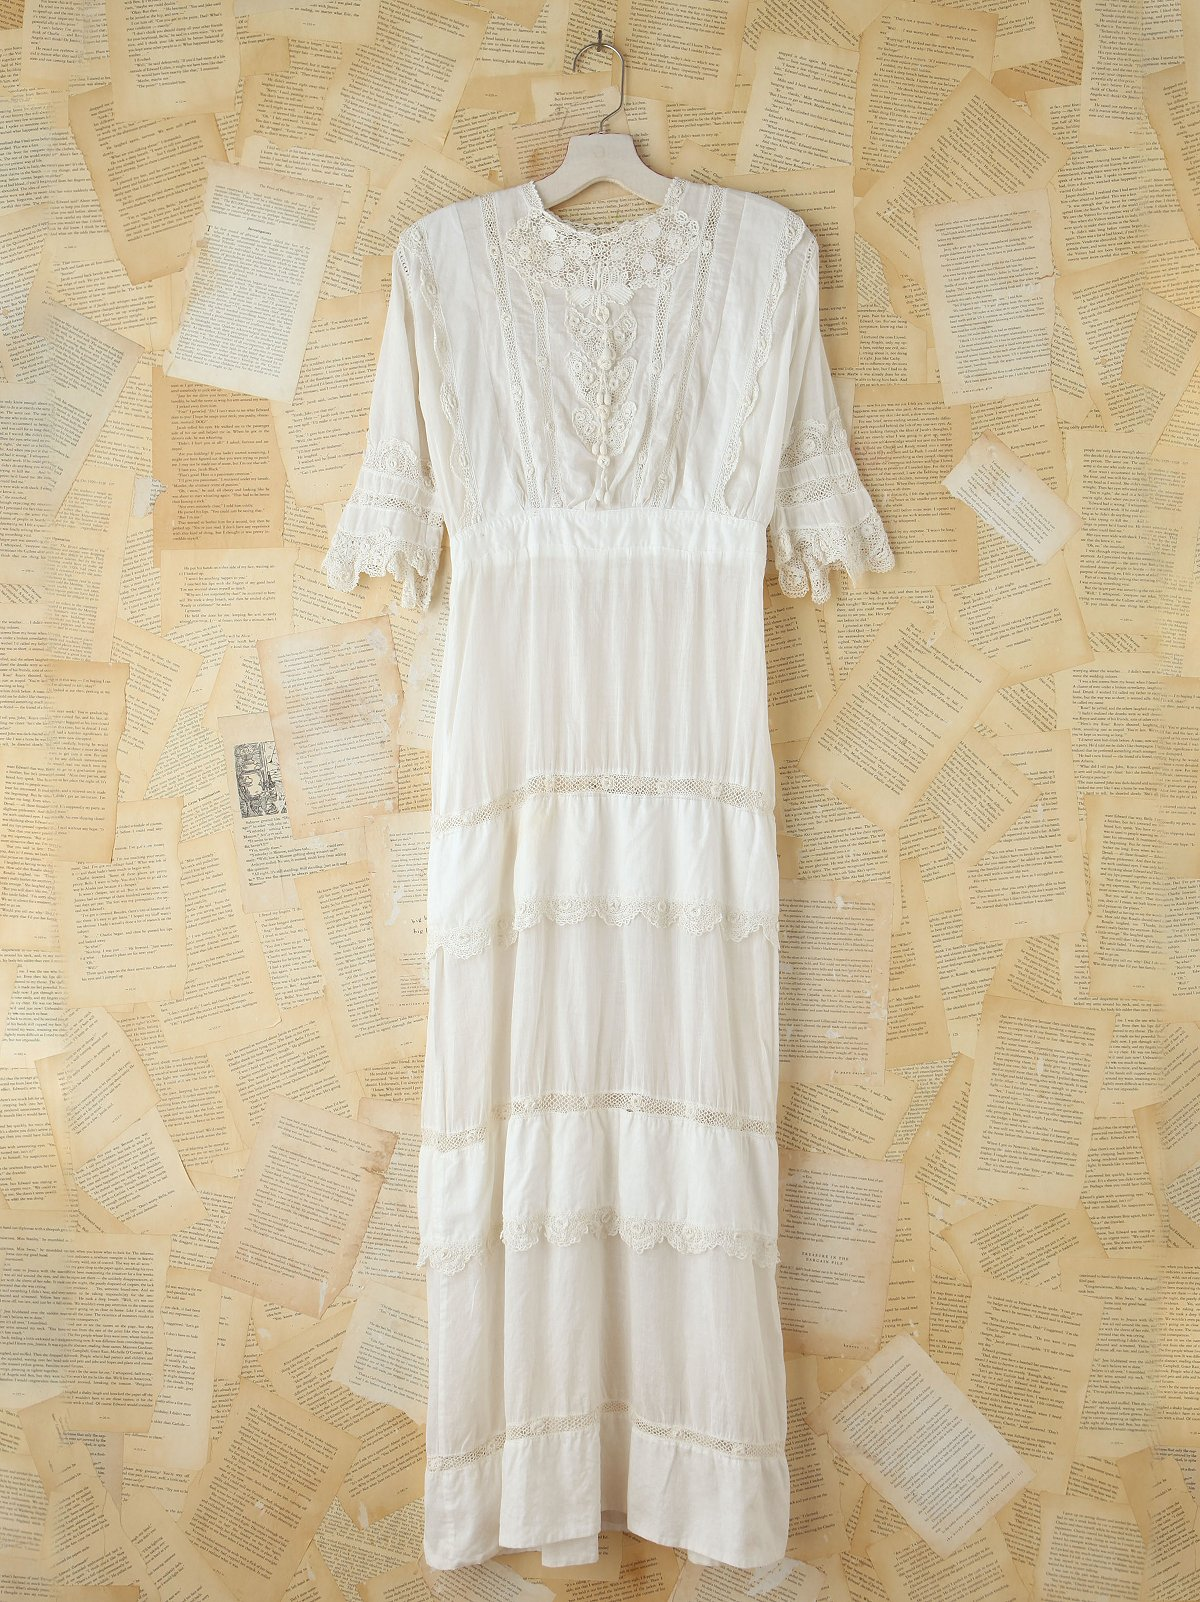 Vintage Sheer Embroidered Dress